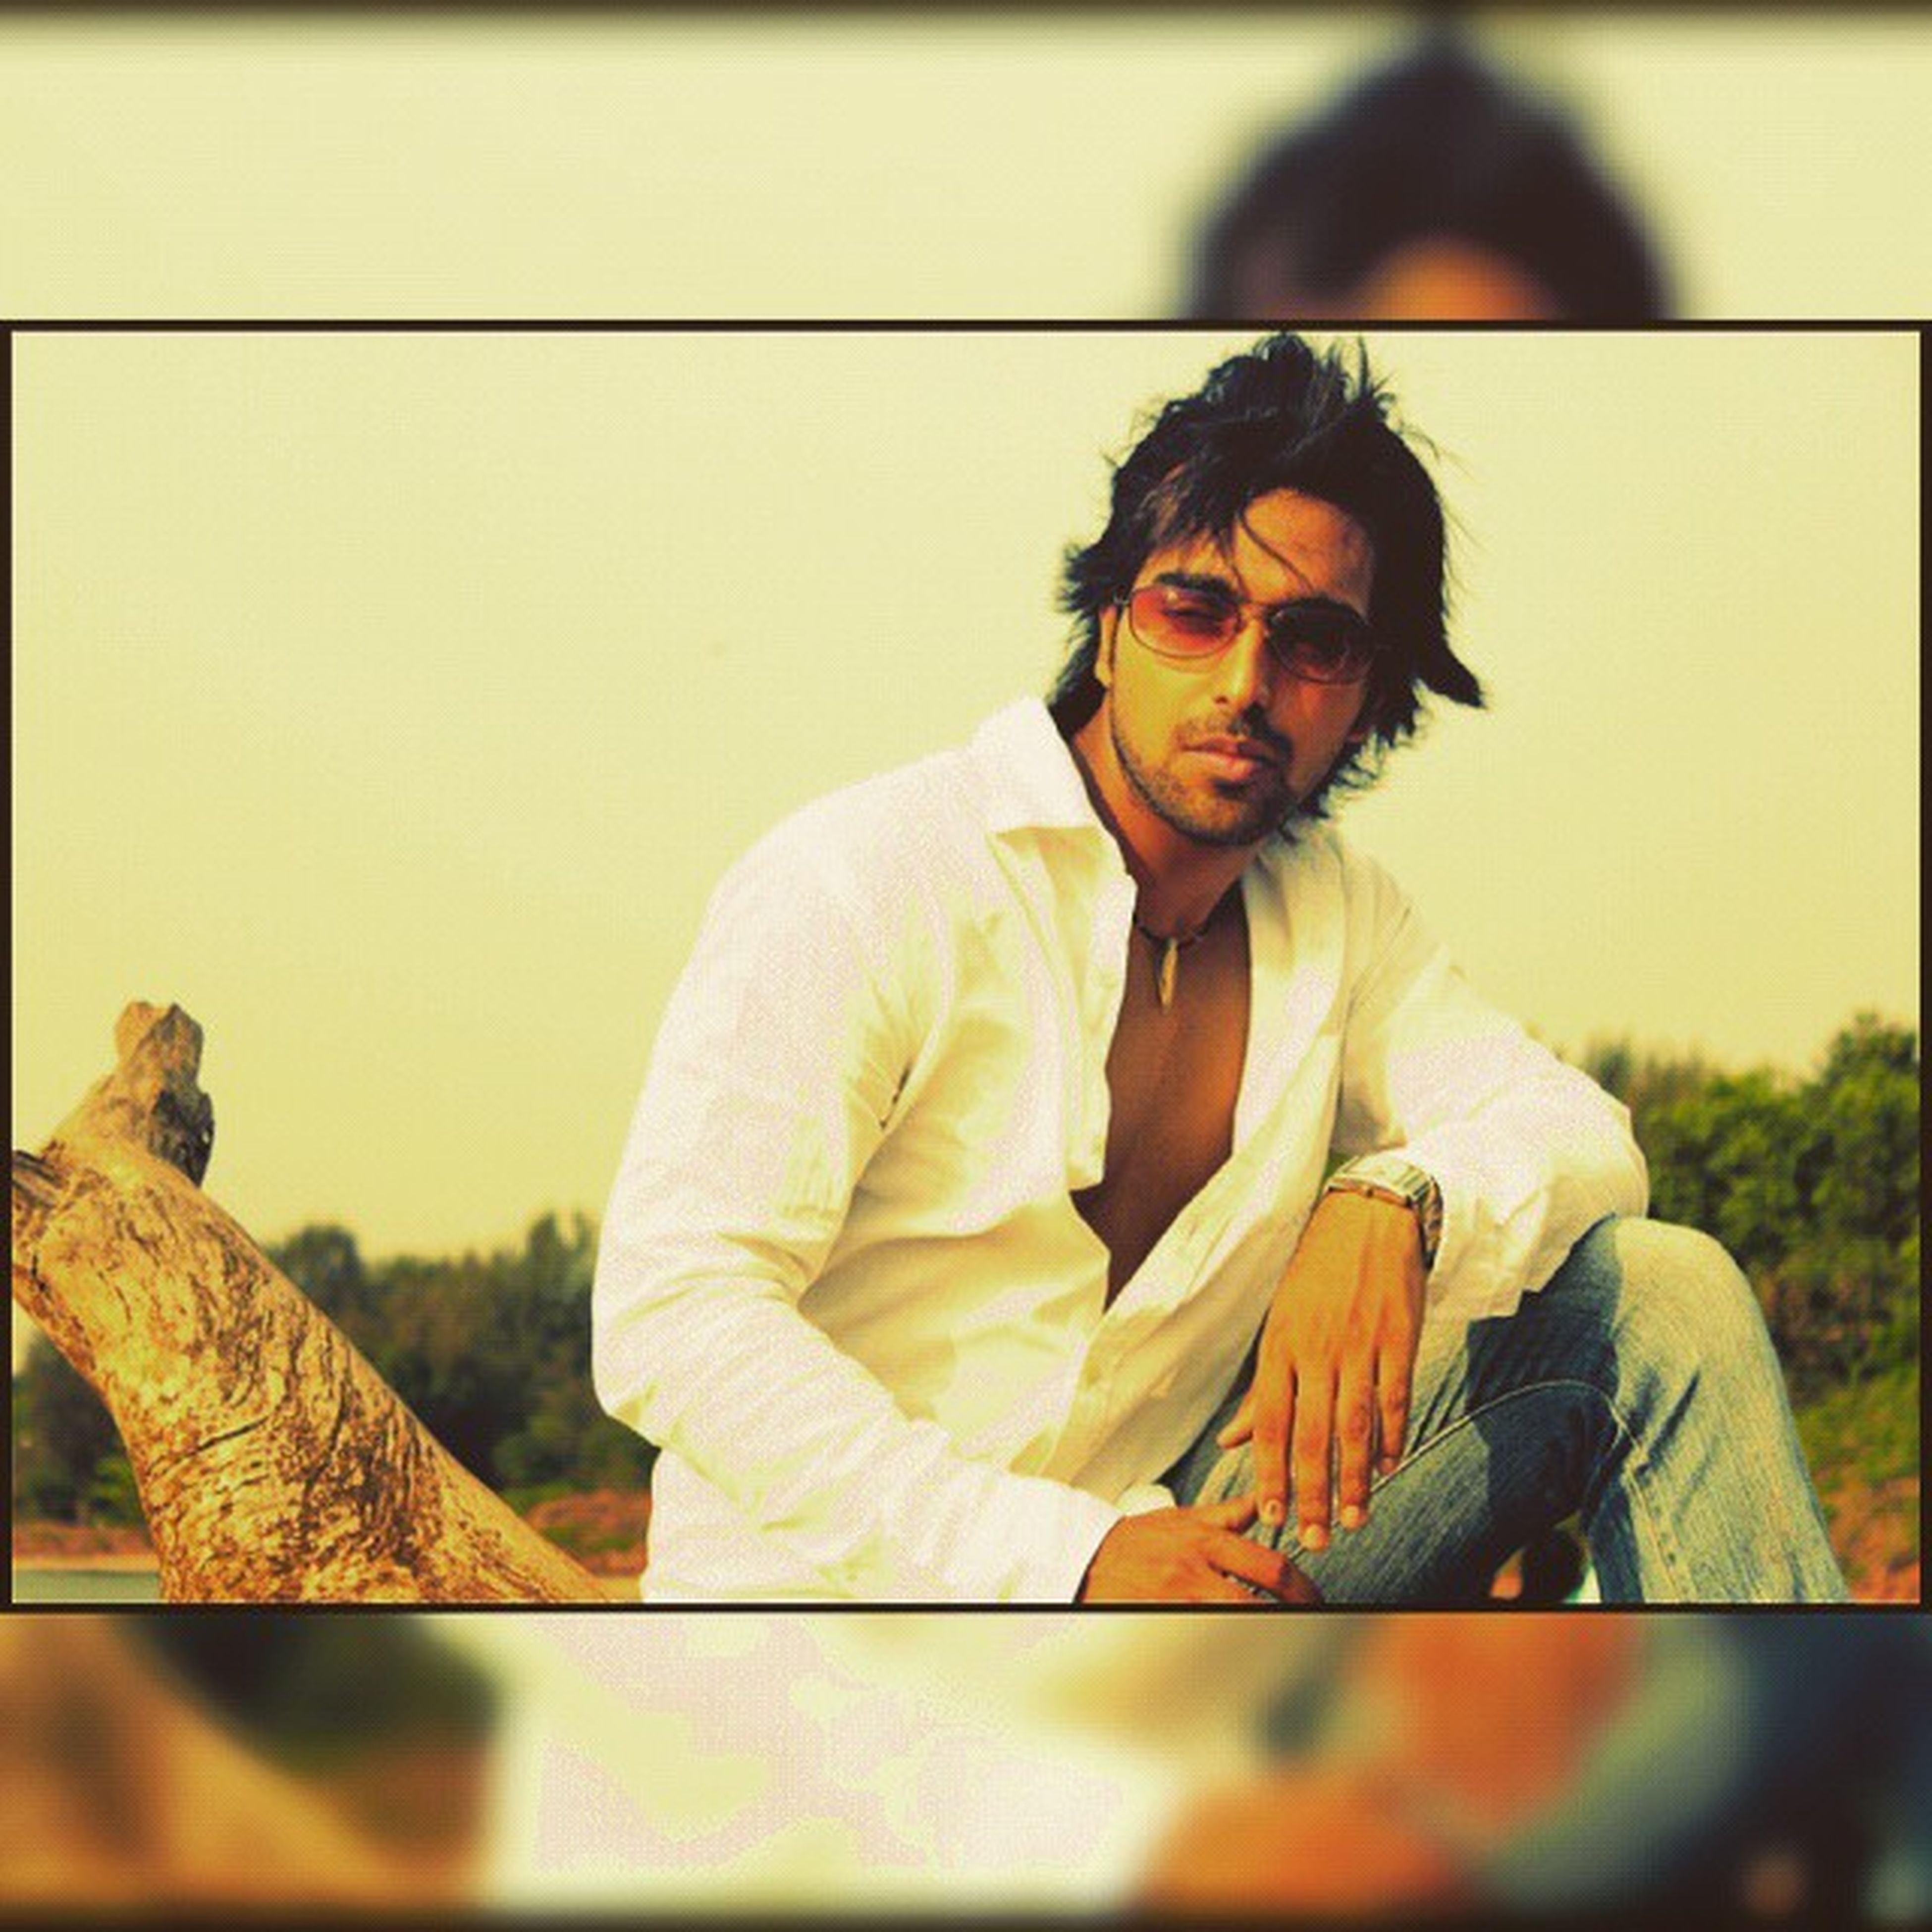 Throwback2k12 Longhair Retroshades Afro_wood_in_the_neck Instastyle Model Stylish Sexiness Cool 3rdphotooftheday Denim Fashion Style @instaghelper Modelingera Stylish Installed Bluejeans Whiteshirt  Hair Me Man swagger swagg repostahd goamyfashiondairies